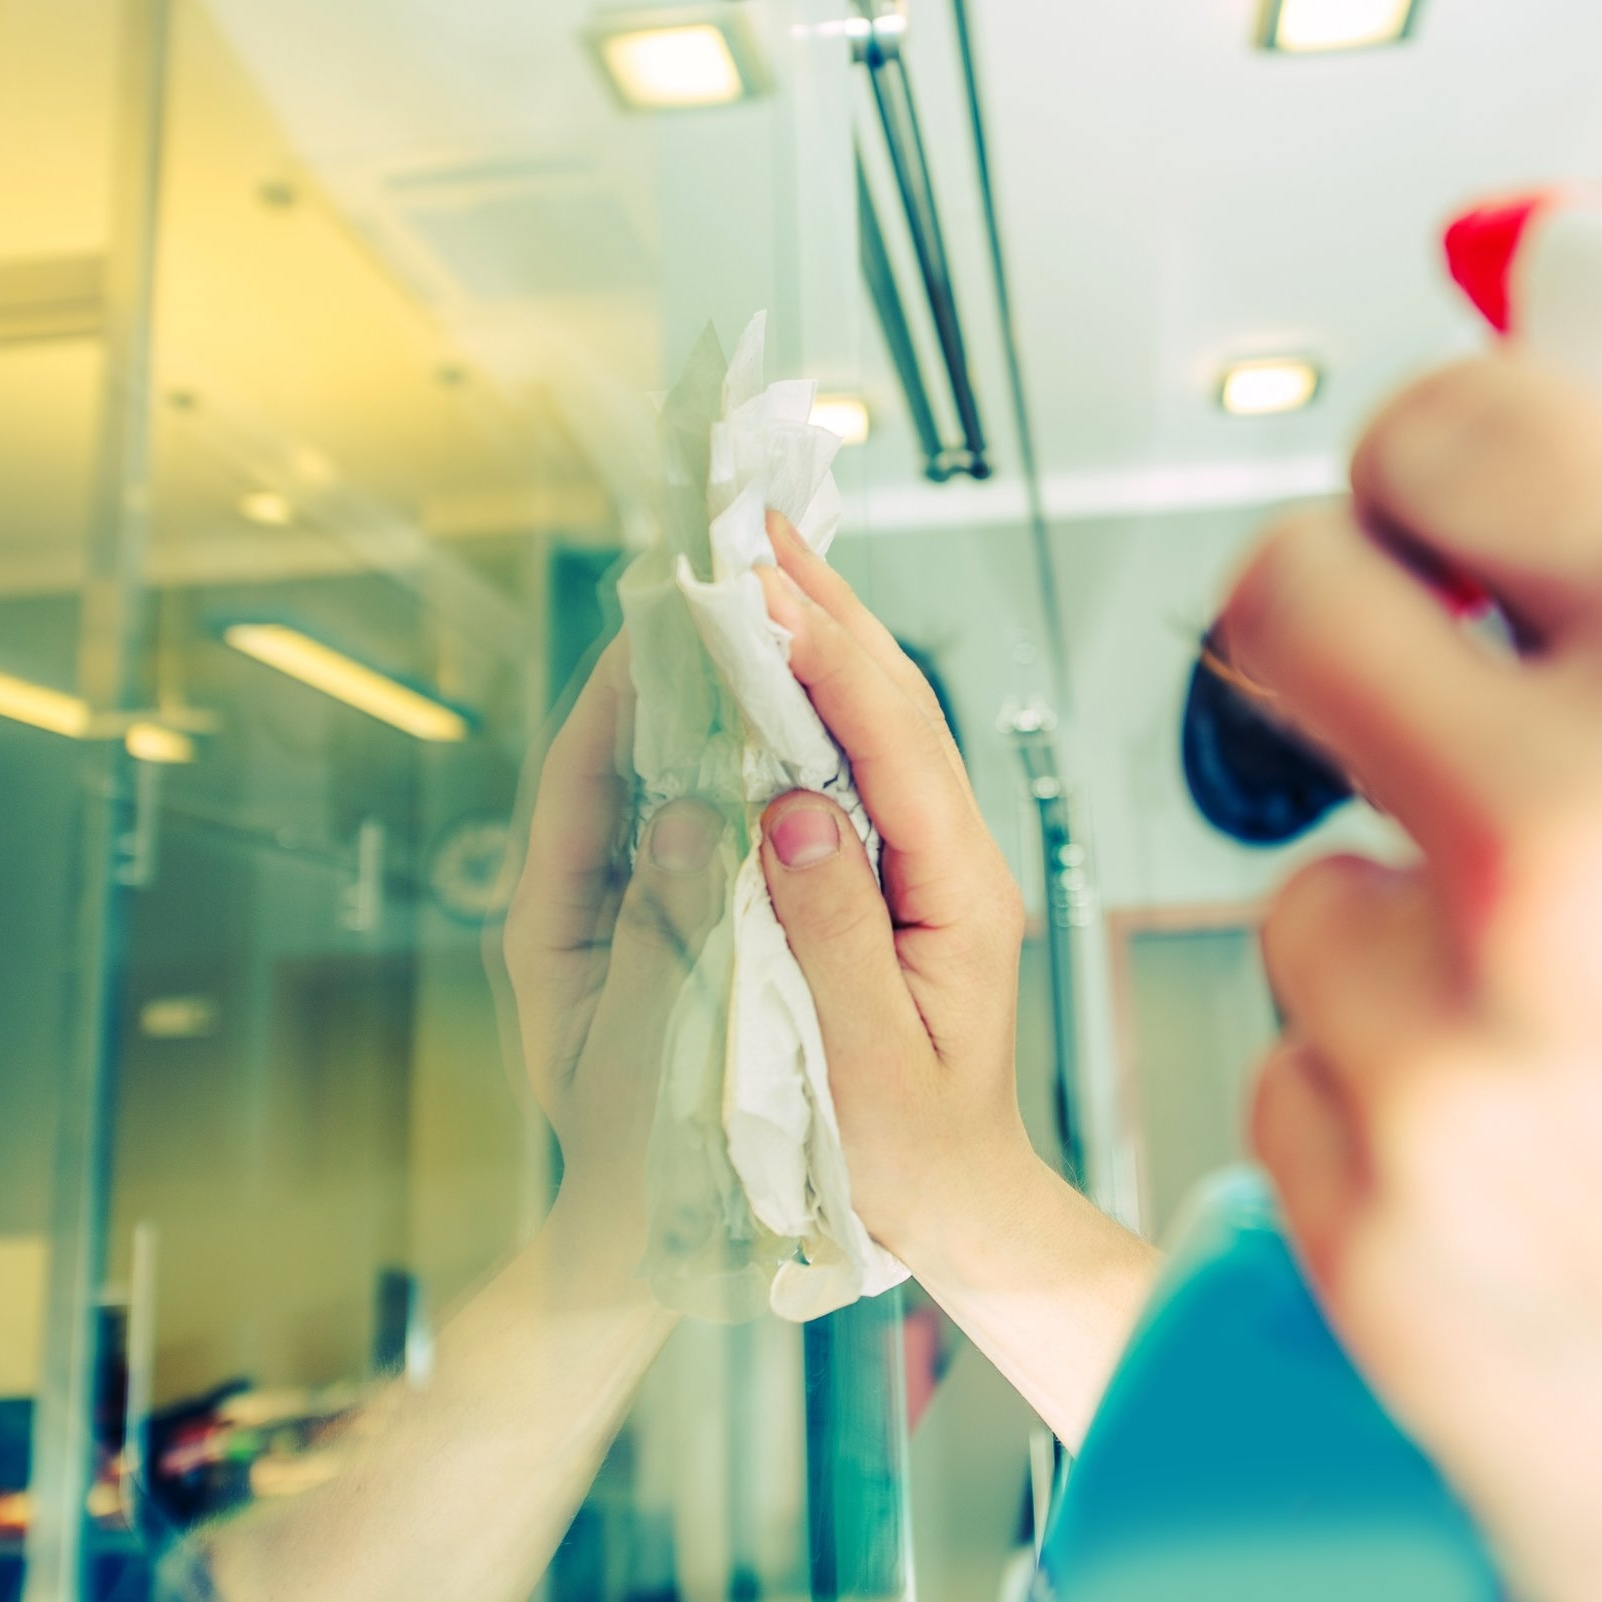 Office Cleaning - A clean office helps keep customers happy and staff productive